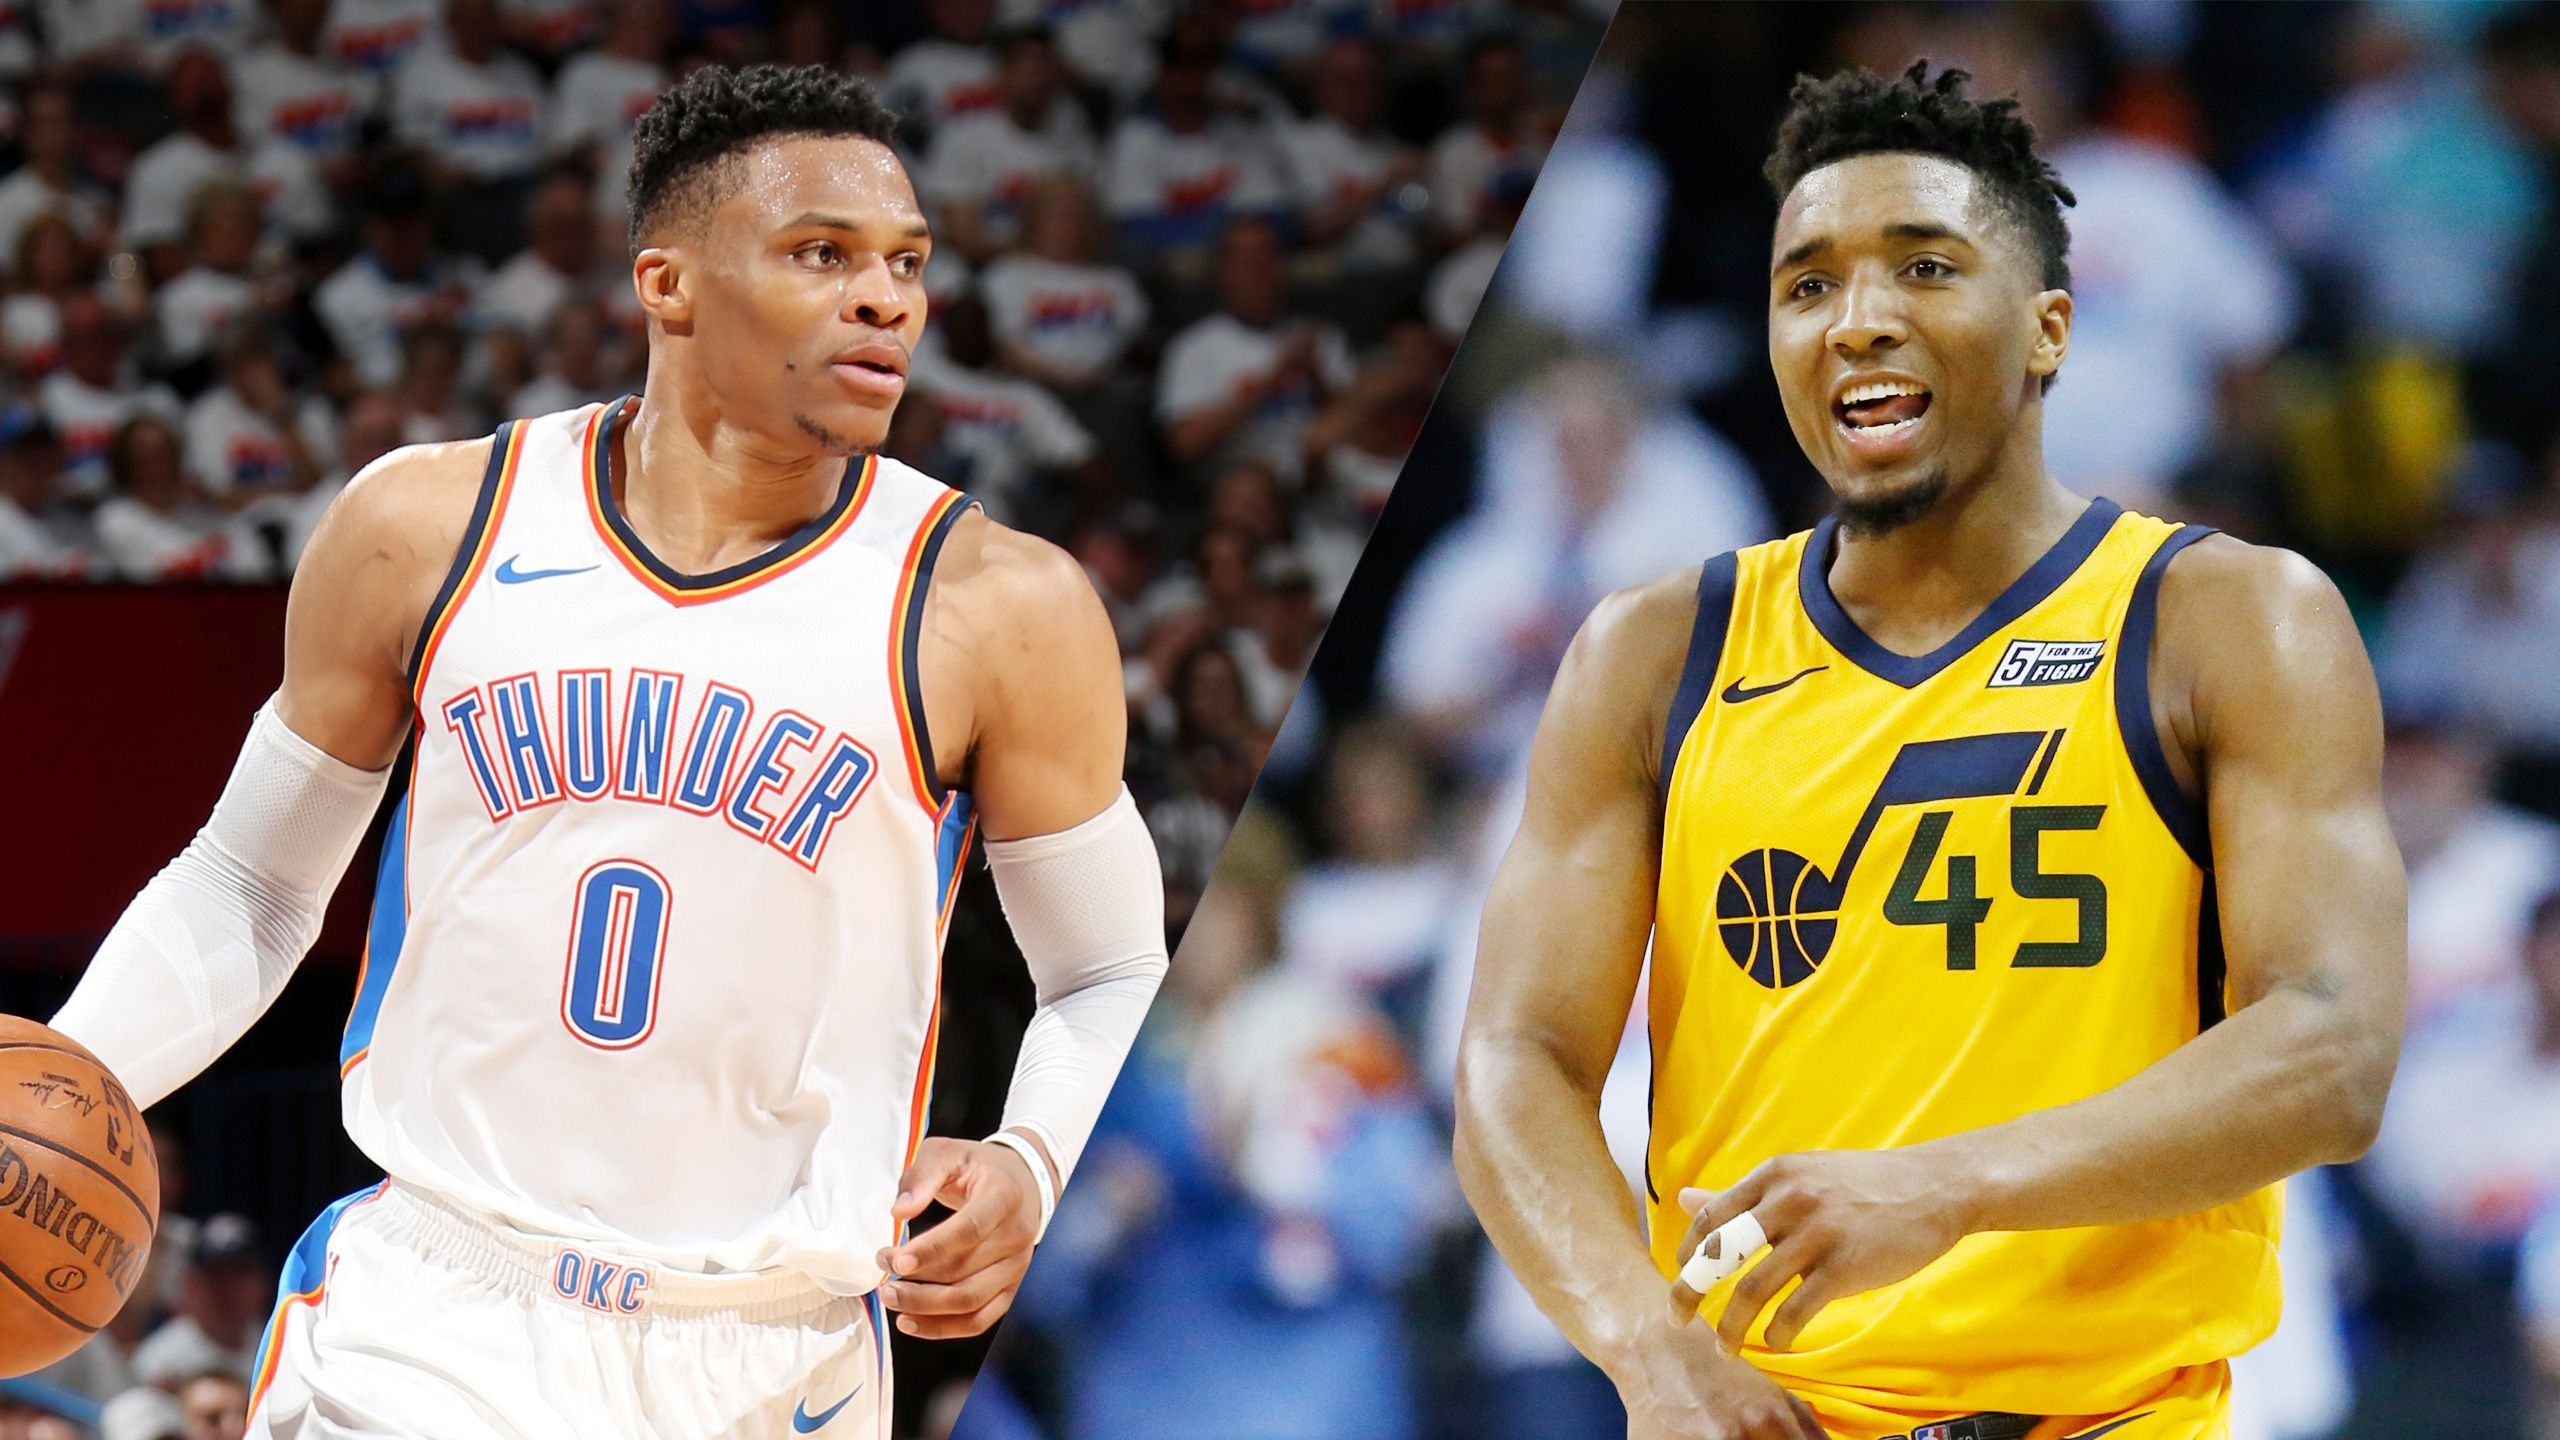 Oklahoma City Thunder vs. Utah Jazz (First Round, Game 3)